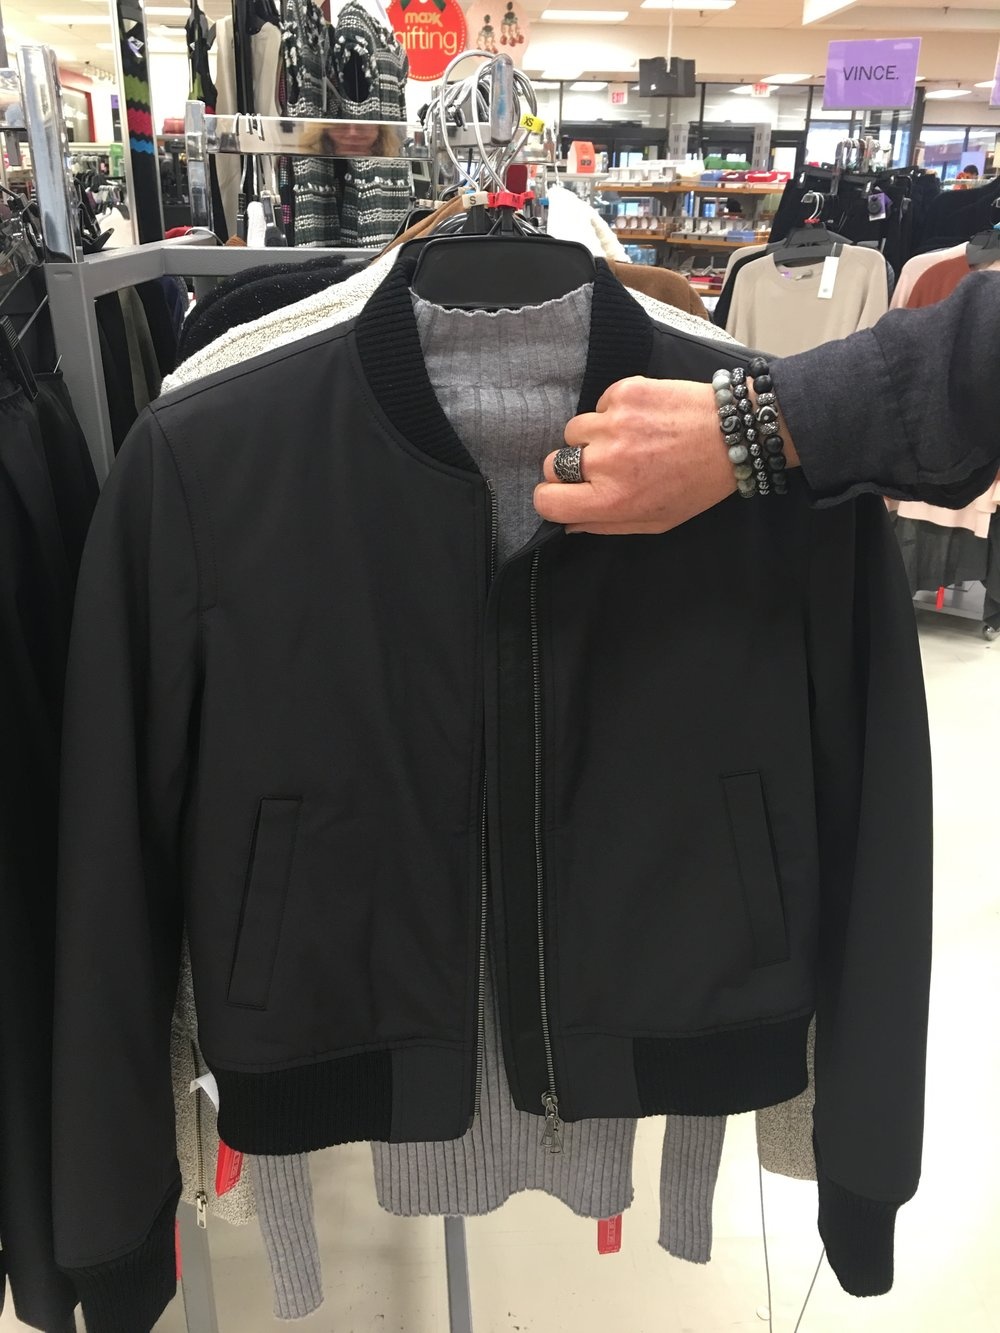 Found this Theory bomber jacket at TJ Maxx - a bargain at $150! Wear over a t-shirt or silky tank. One of our favorite looks this season.